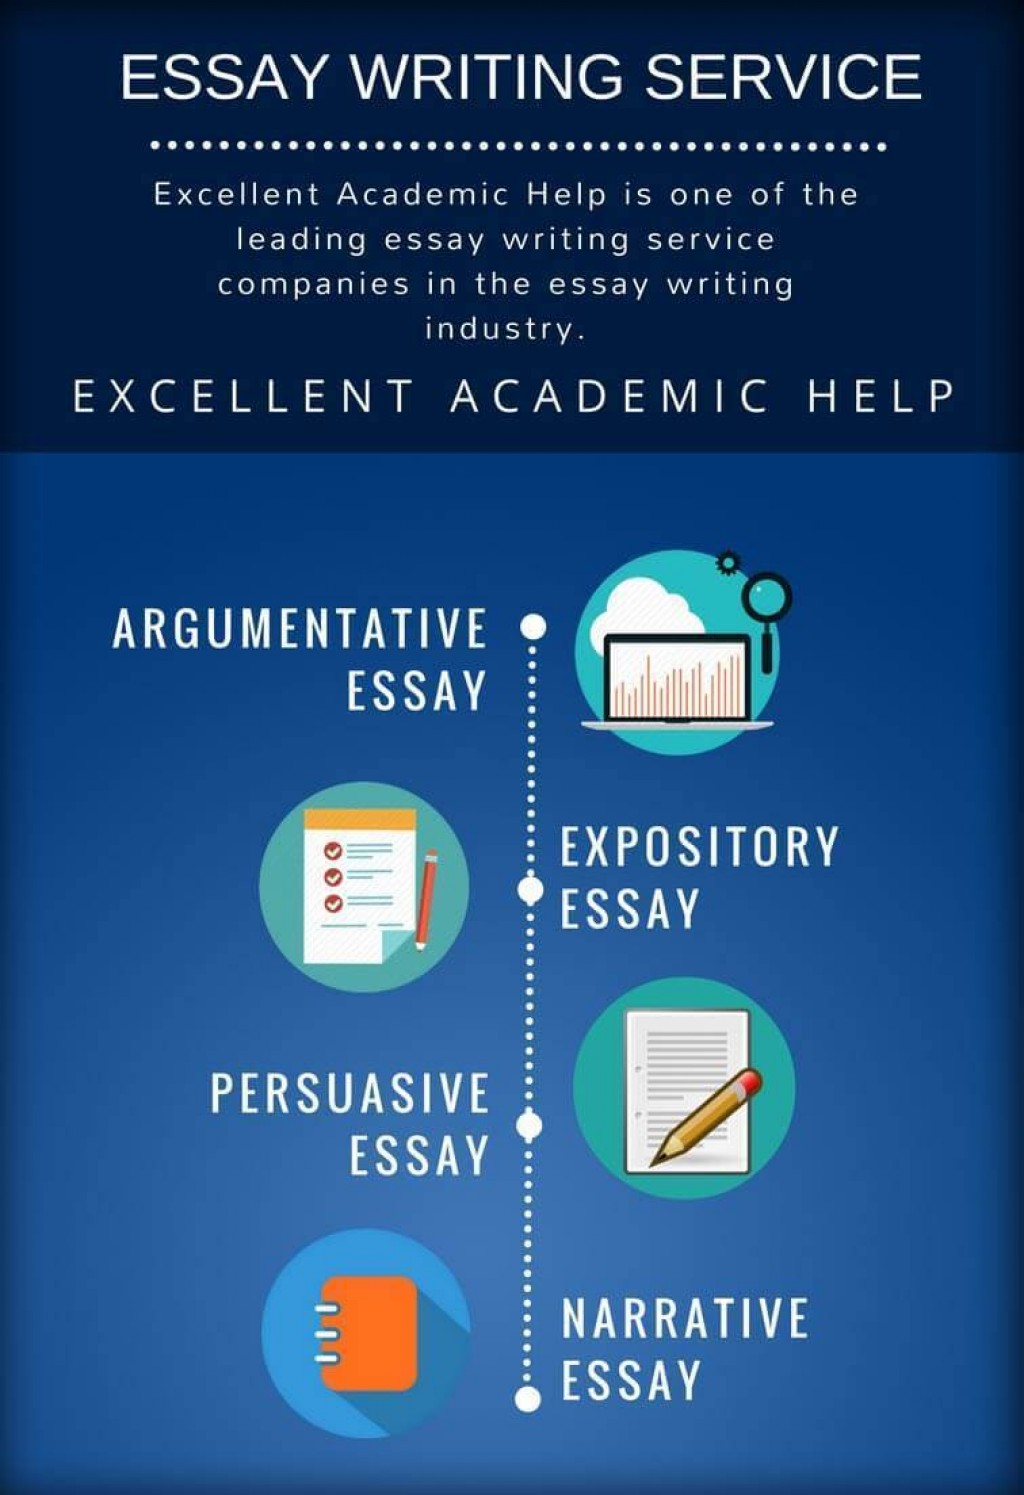 001 Essay Example Cheap Writing Top Service Canada Australia Reviews Large